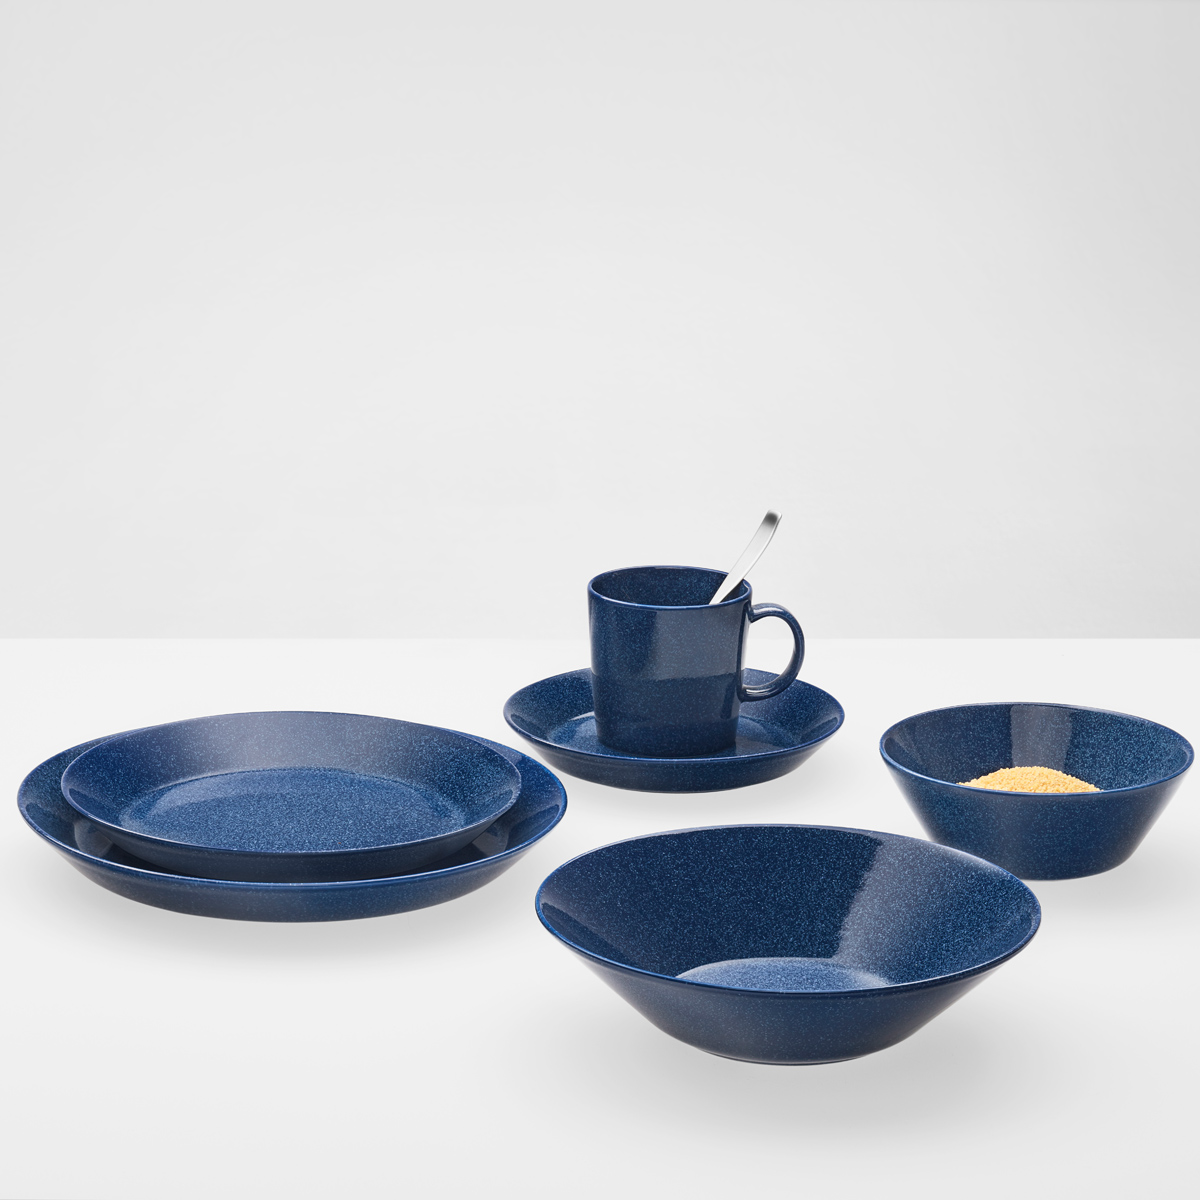 iittala teema dotted blue dinnerware iittala teema. Black Bedroom Furniture Sets. Home Design Ideas